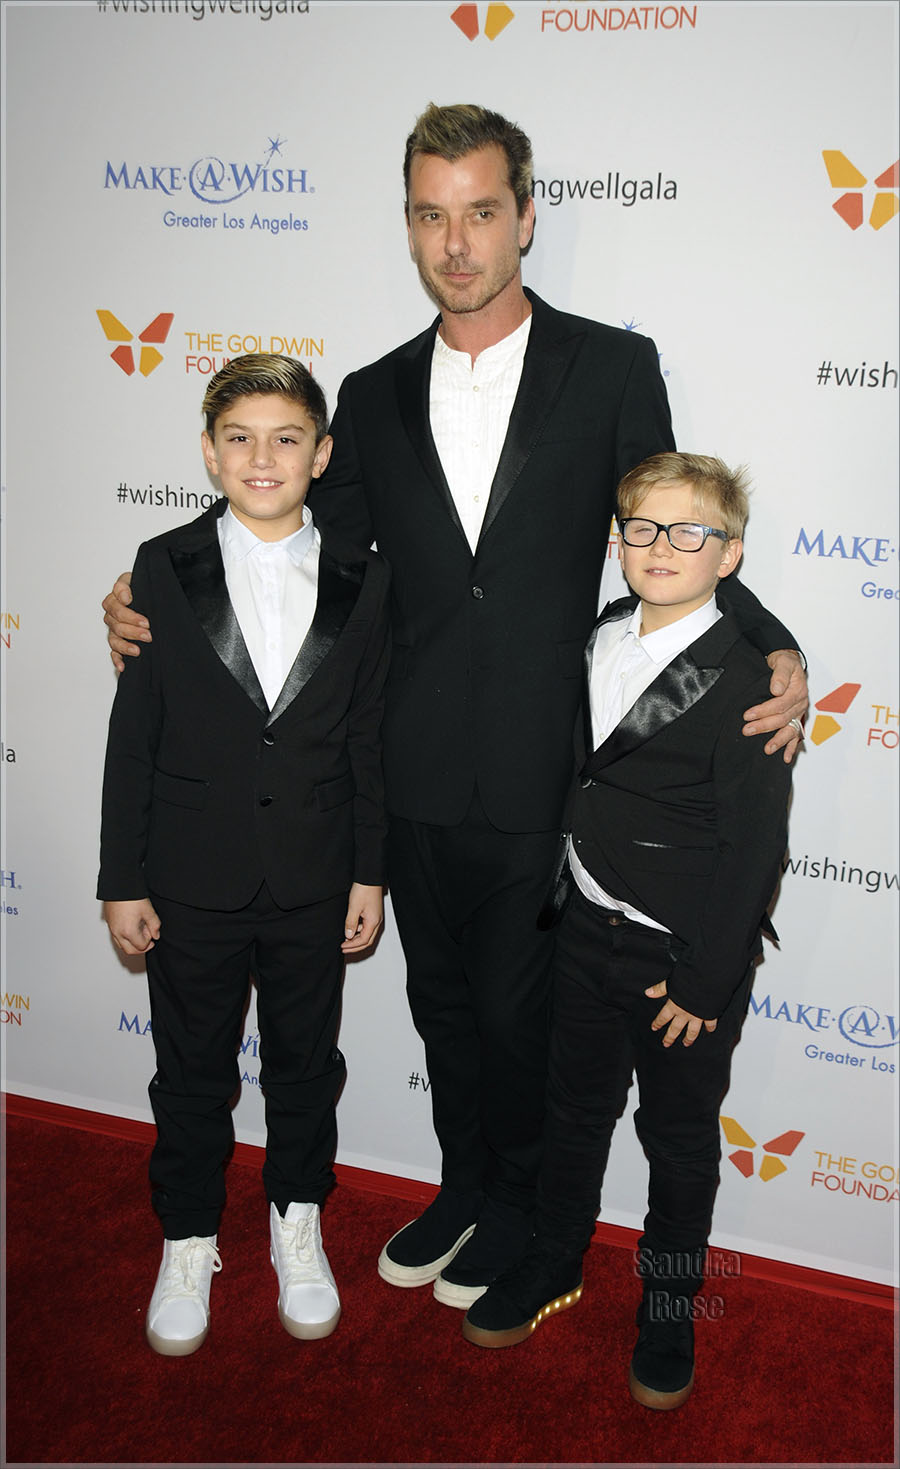 Gavin Rossdale & sons in LA